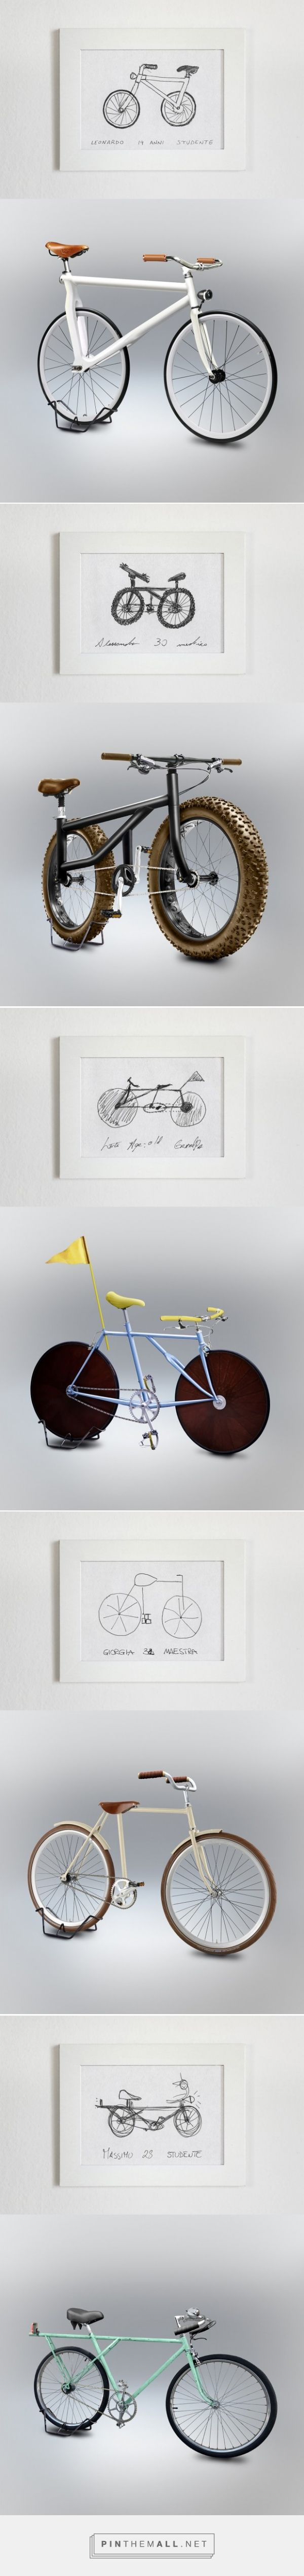 Lifelike mock-ups by Gianluca Gimini. Designed from flawed bicycle drawings made by his friends.